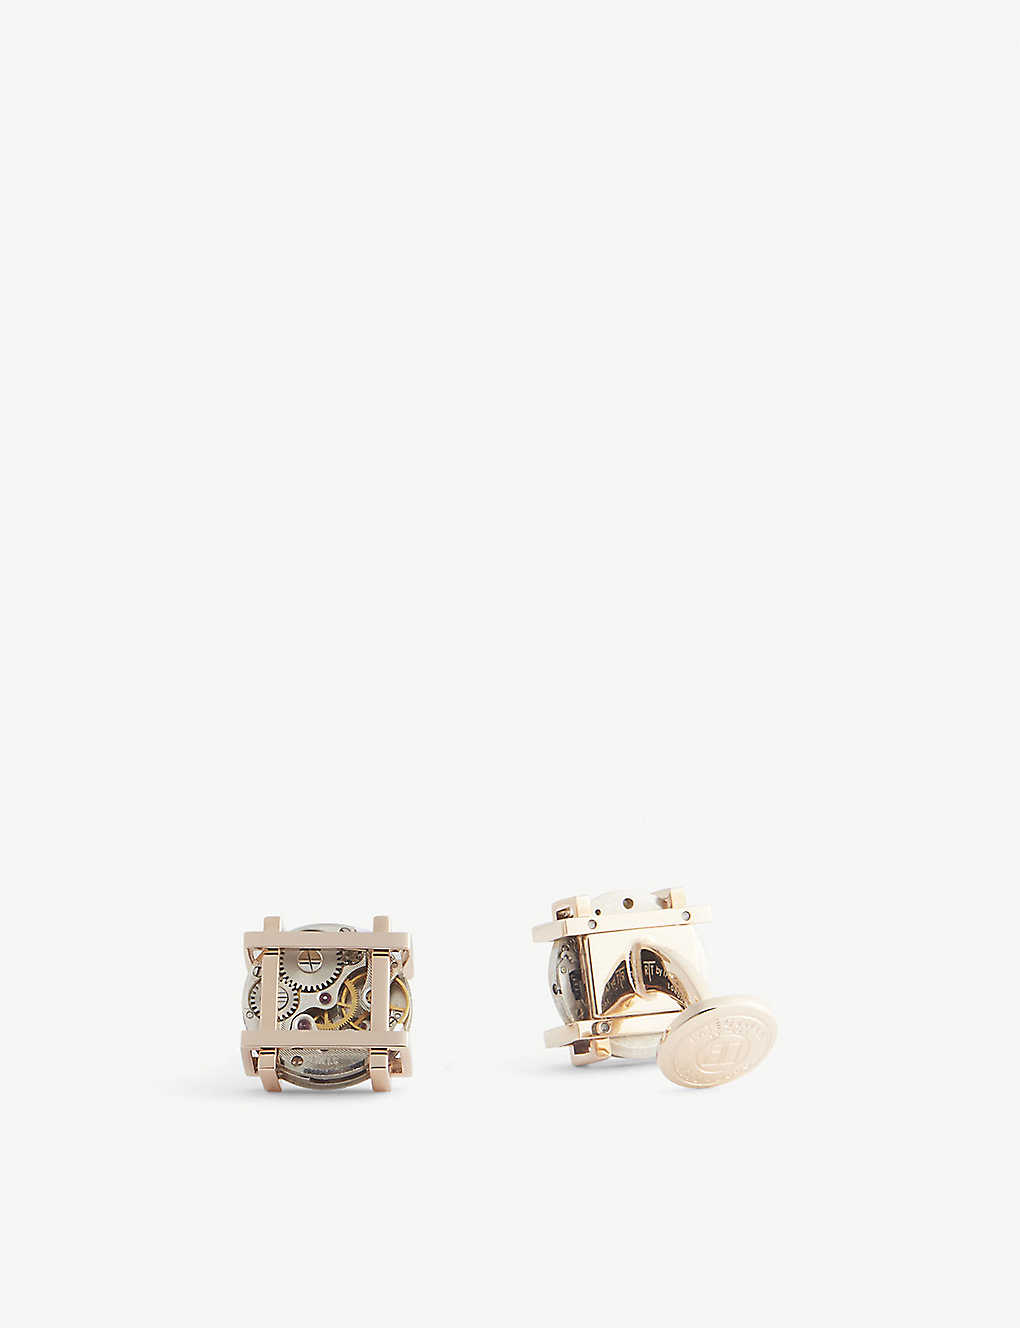 Gold Plated Sterling Silver Square Cufflinks